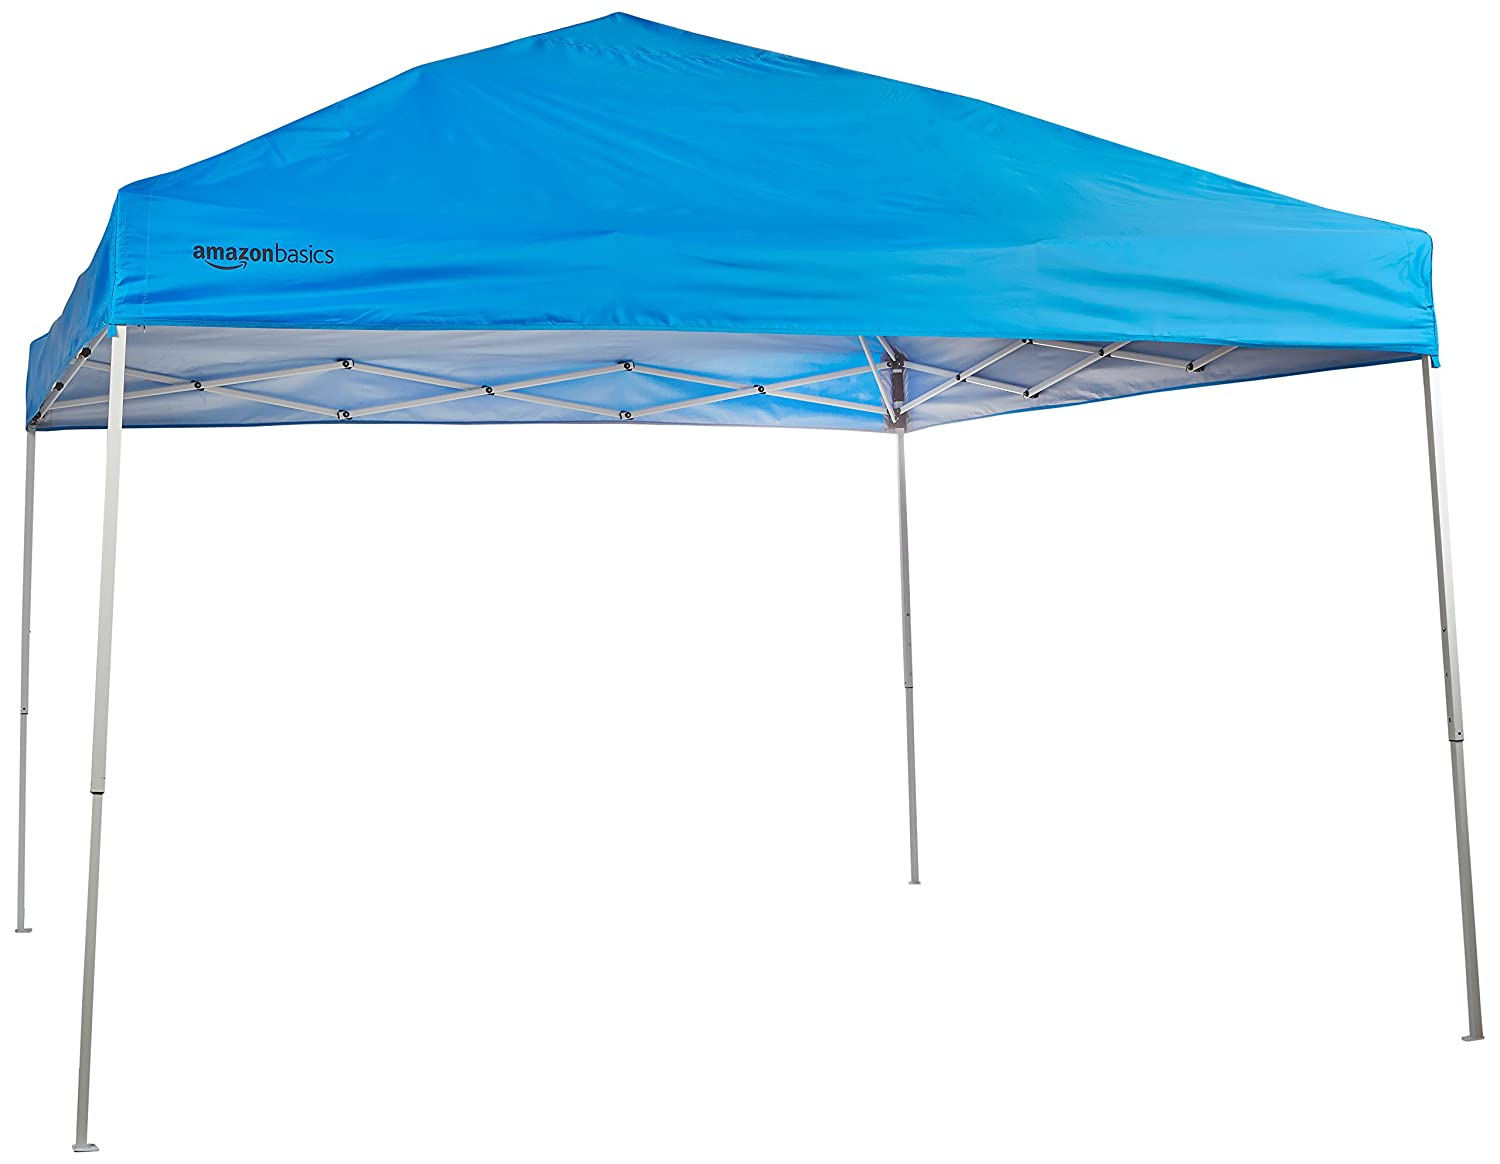 Amazon.com  AmazonBasics Pop-Up Canopy Tent - 10u0027 x 10u0027 Blue  Garden u0026 Outdoor  sc 1 st  Amazon.com : tent with canopy - memphite.com